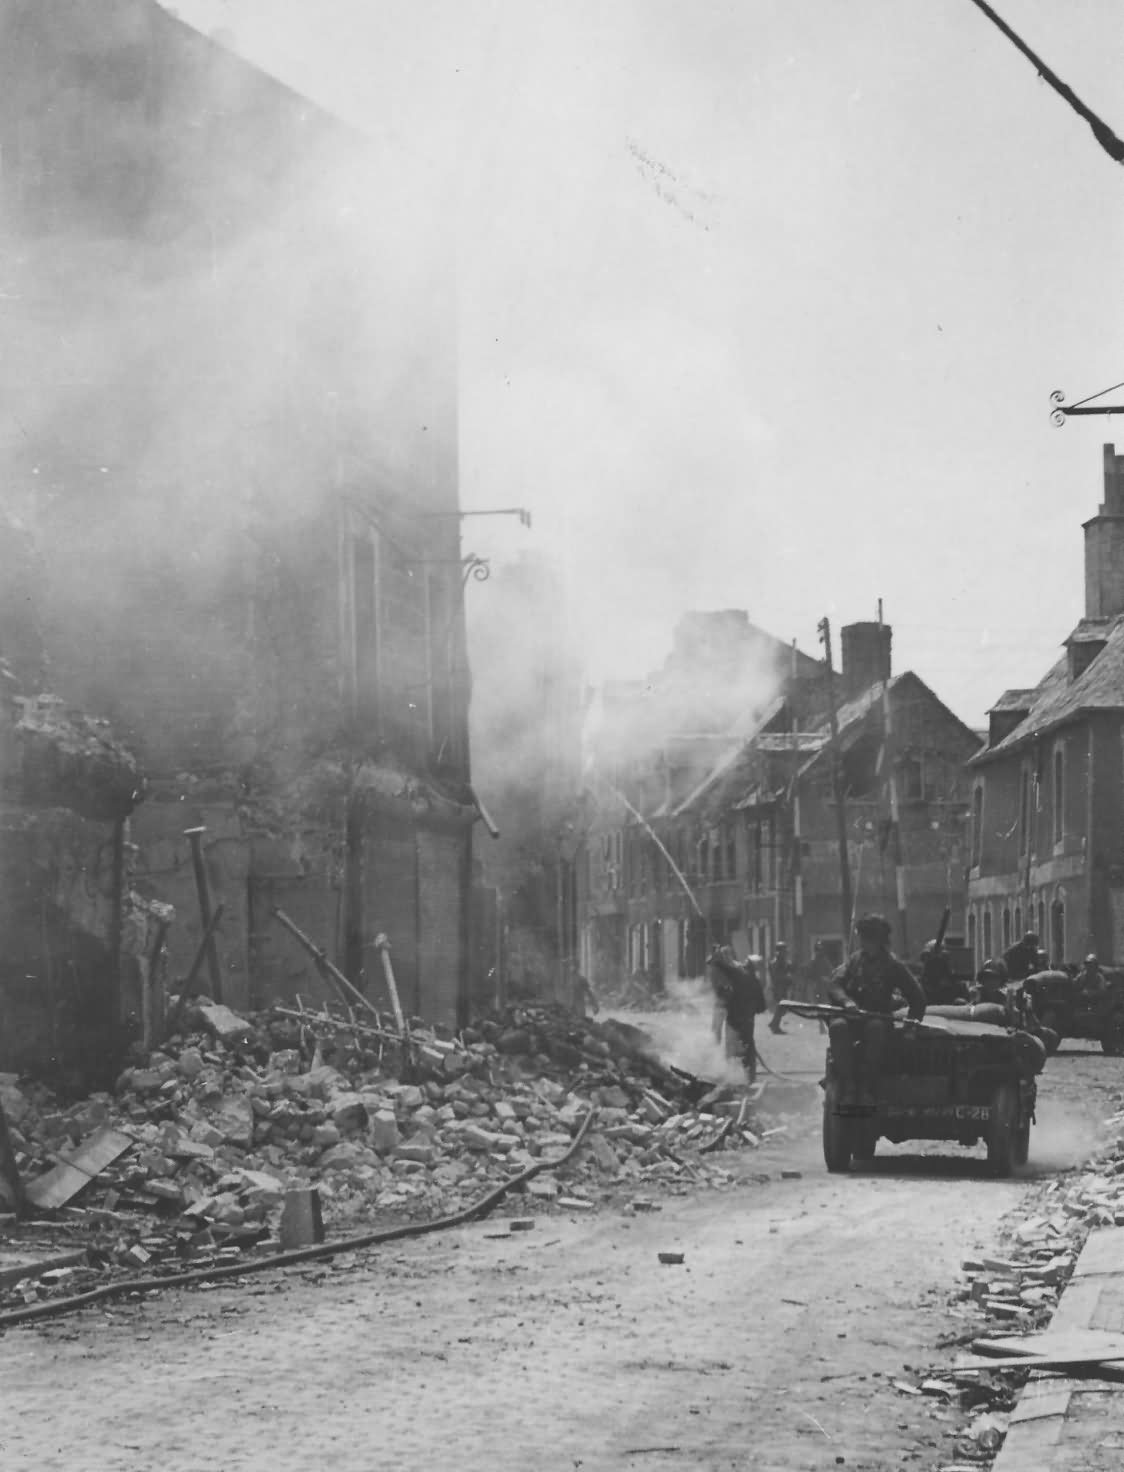 Photo_Fireman_Put_Out_Fire_in_Carentan_Normandy_France_1944.jpg